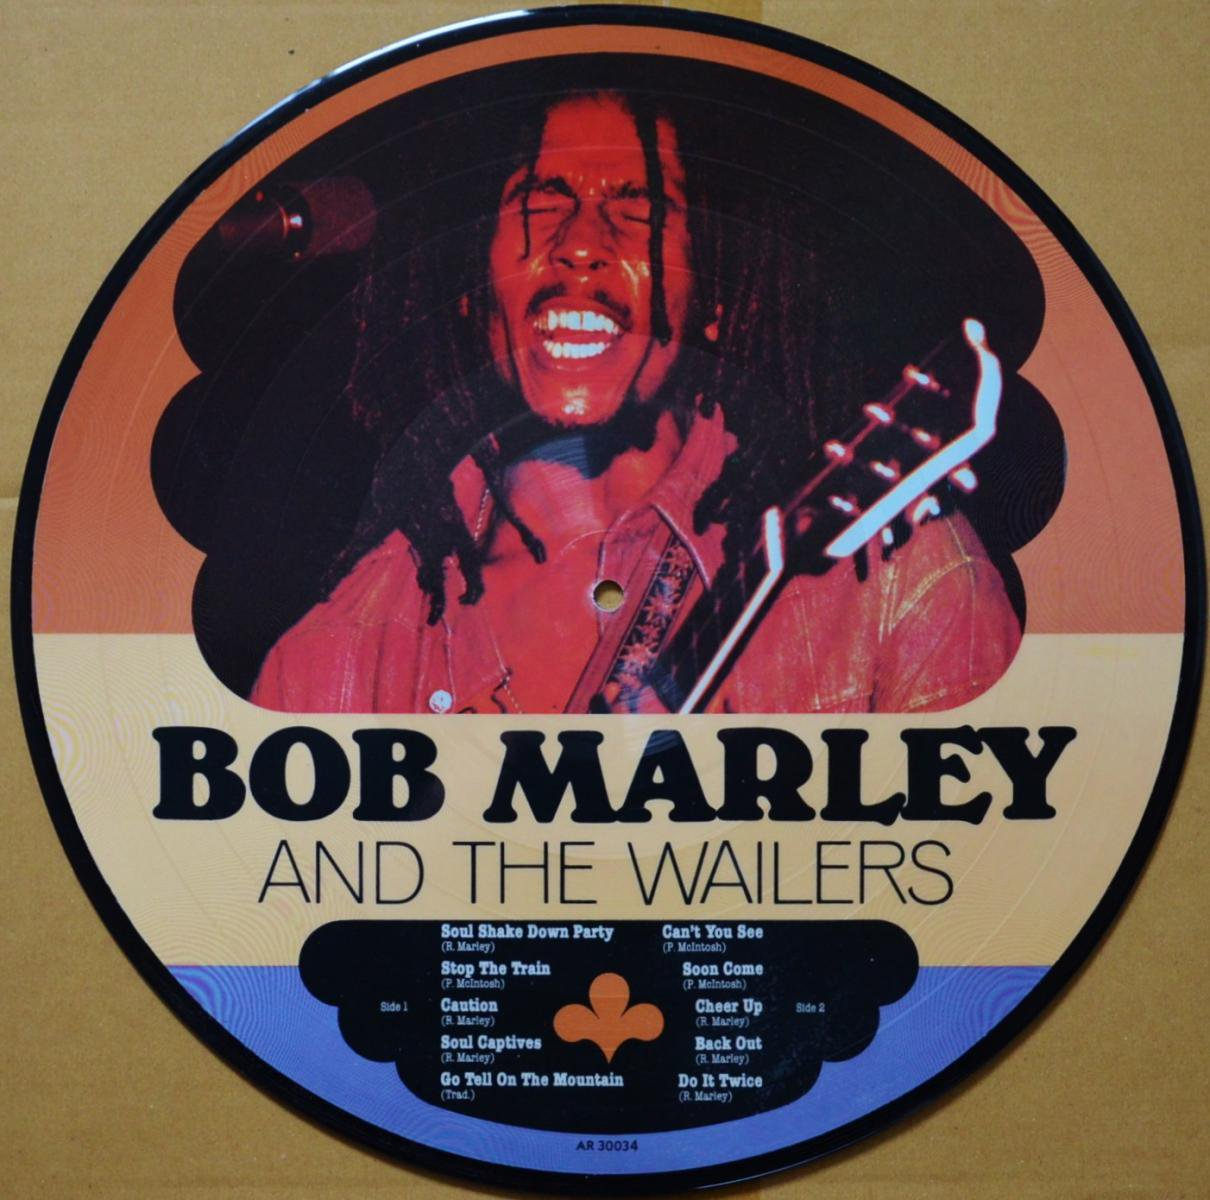 BOB MARLEY & THE WAILERS / BOB MARLEY AND THE WAILERS (LP)